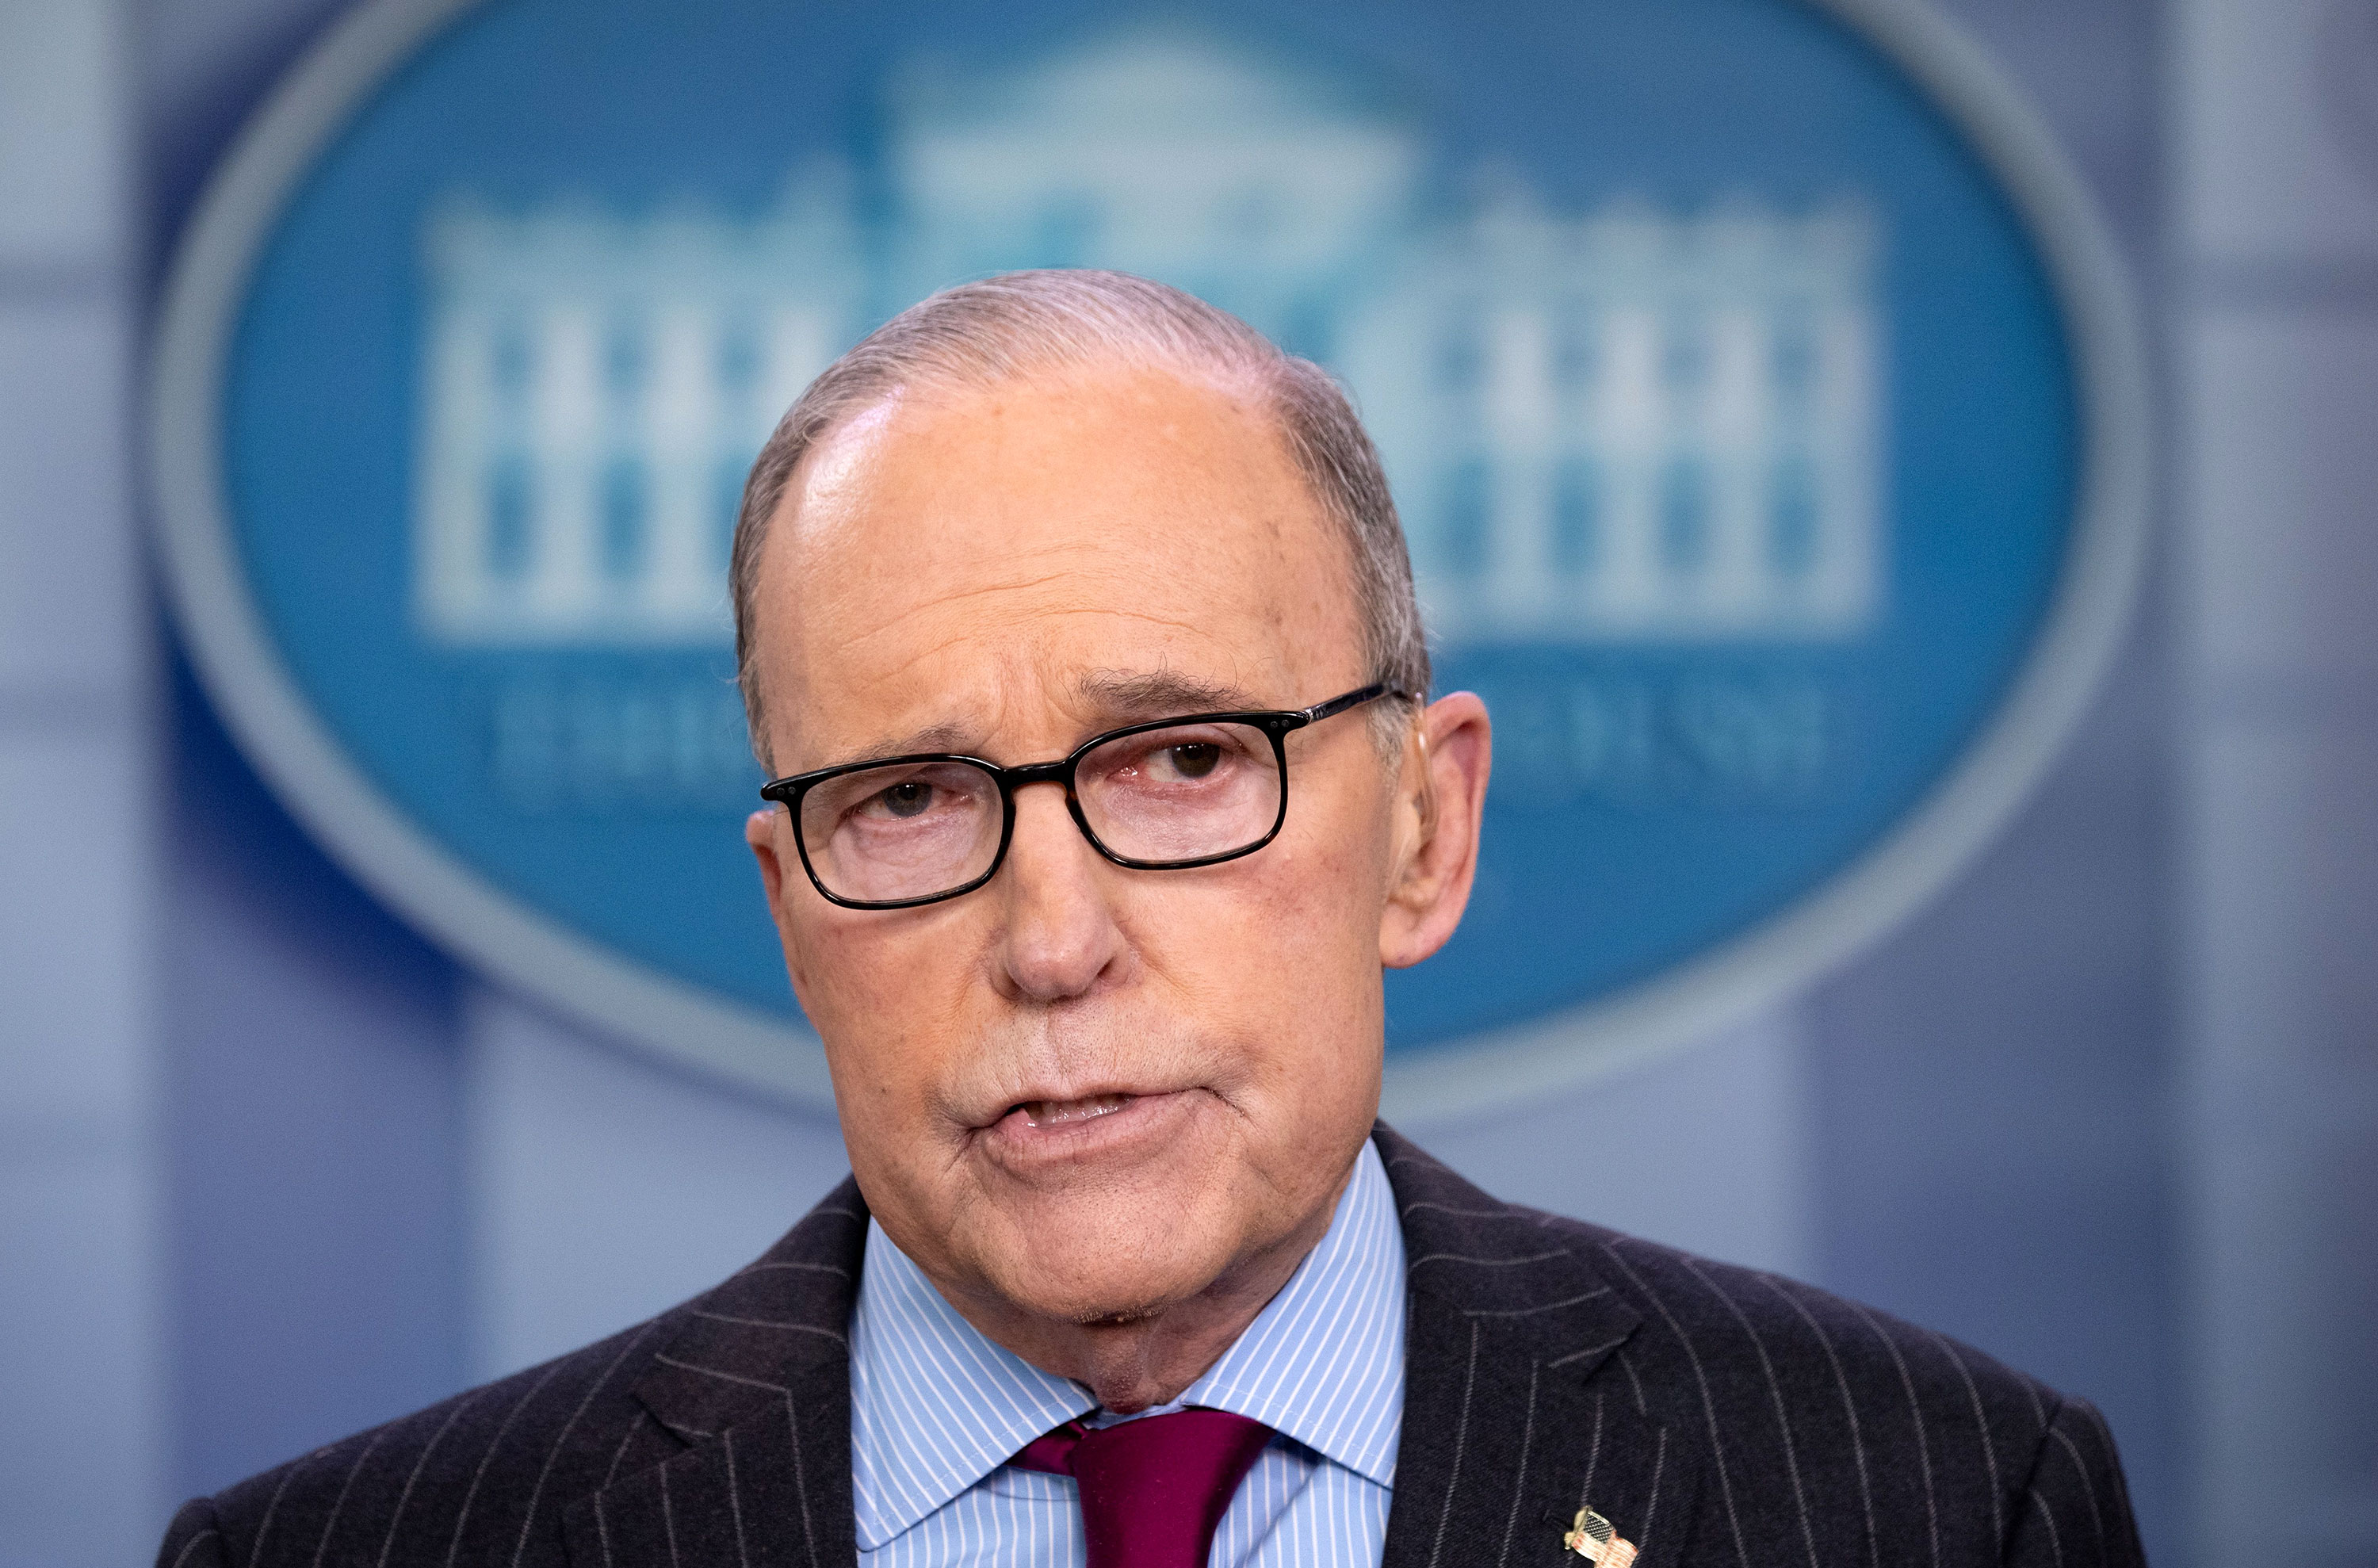 National Economic Council director Larry Kudlow speaks during a television interview at the White House on January 29.